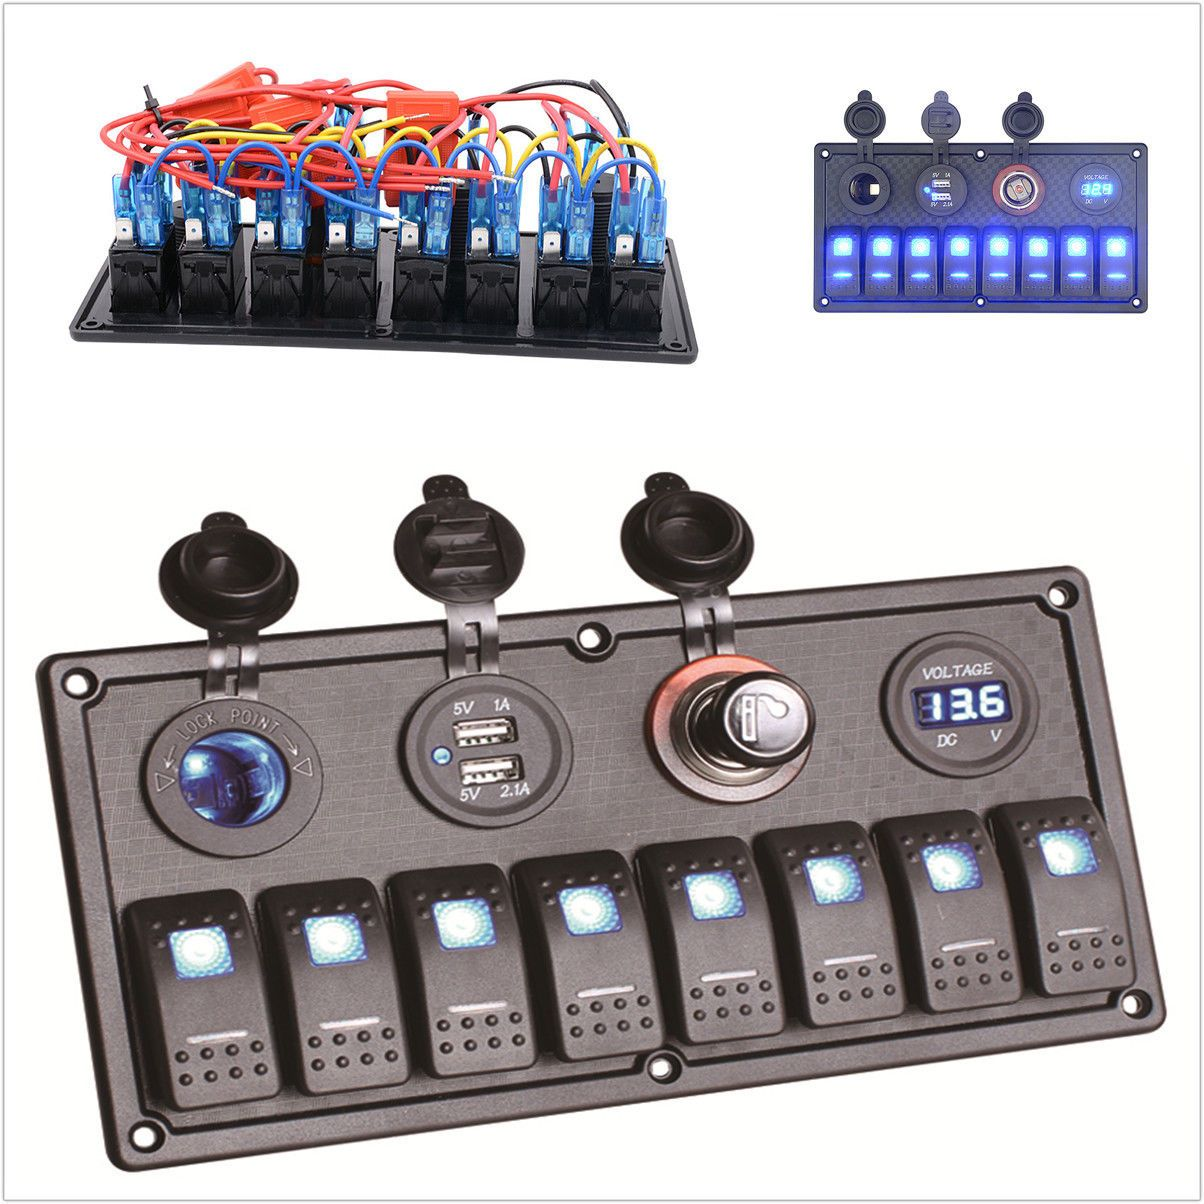 Seachoice Marine 30a Type Iii Manual Reset Circuit Breaker 12v 24v Boat Led Rocker Switch Panel 4 Switches Ebay 30 Amp 13061 Electrical And Lighting Products Pinterest